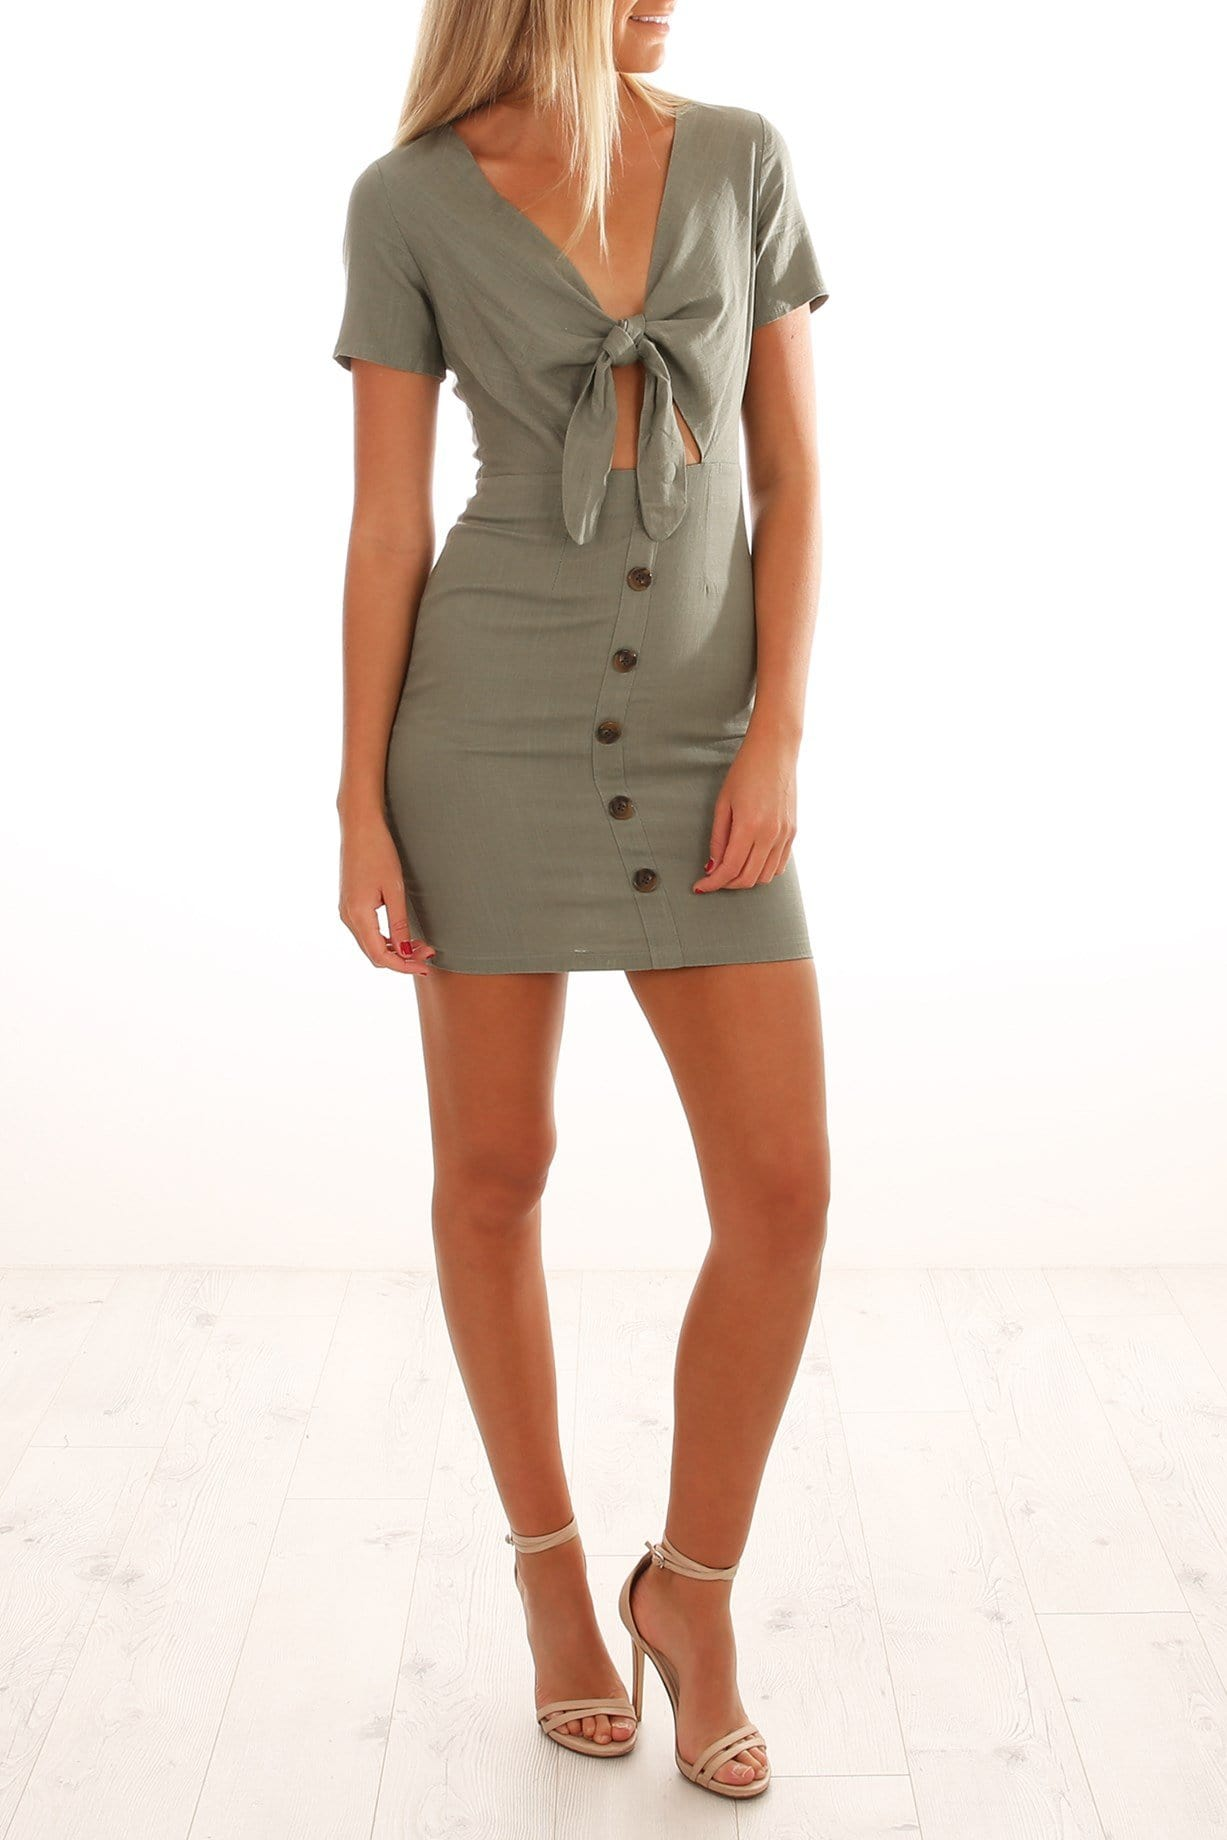 Fond Of You Dress Olive